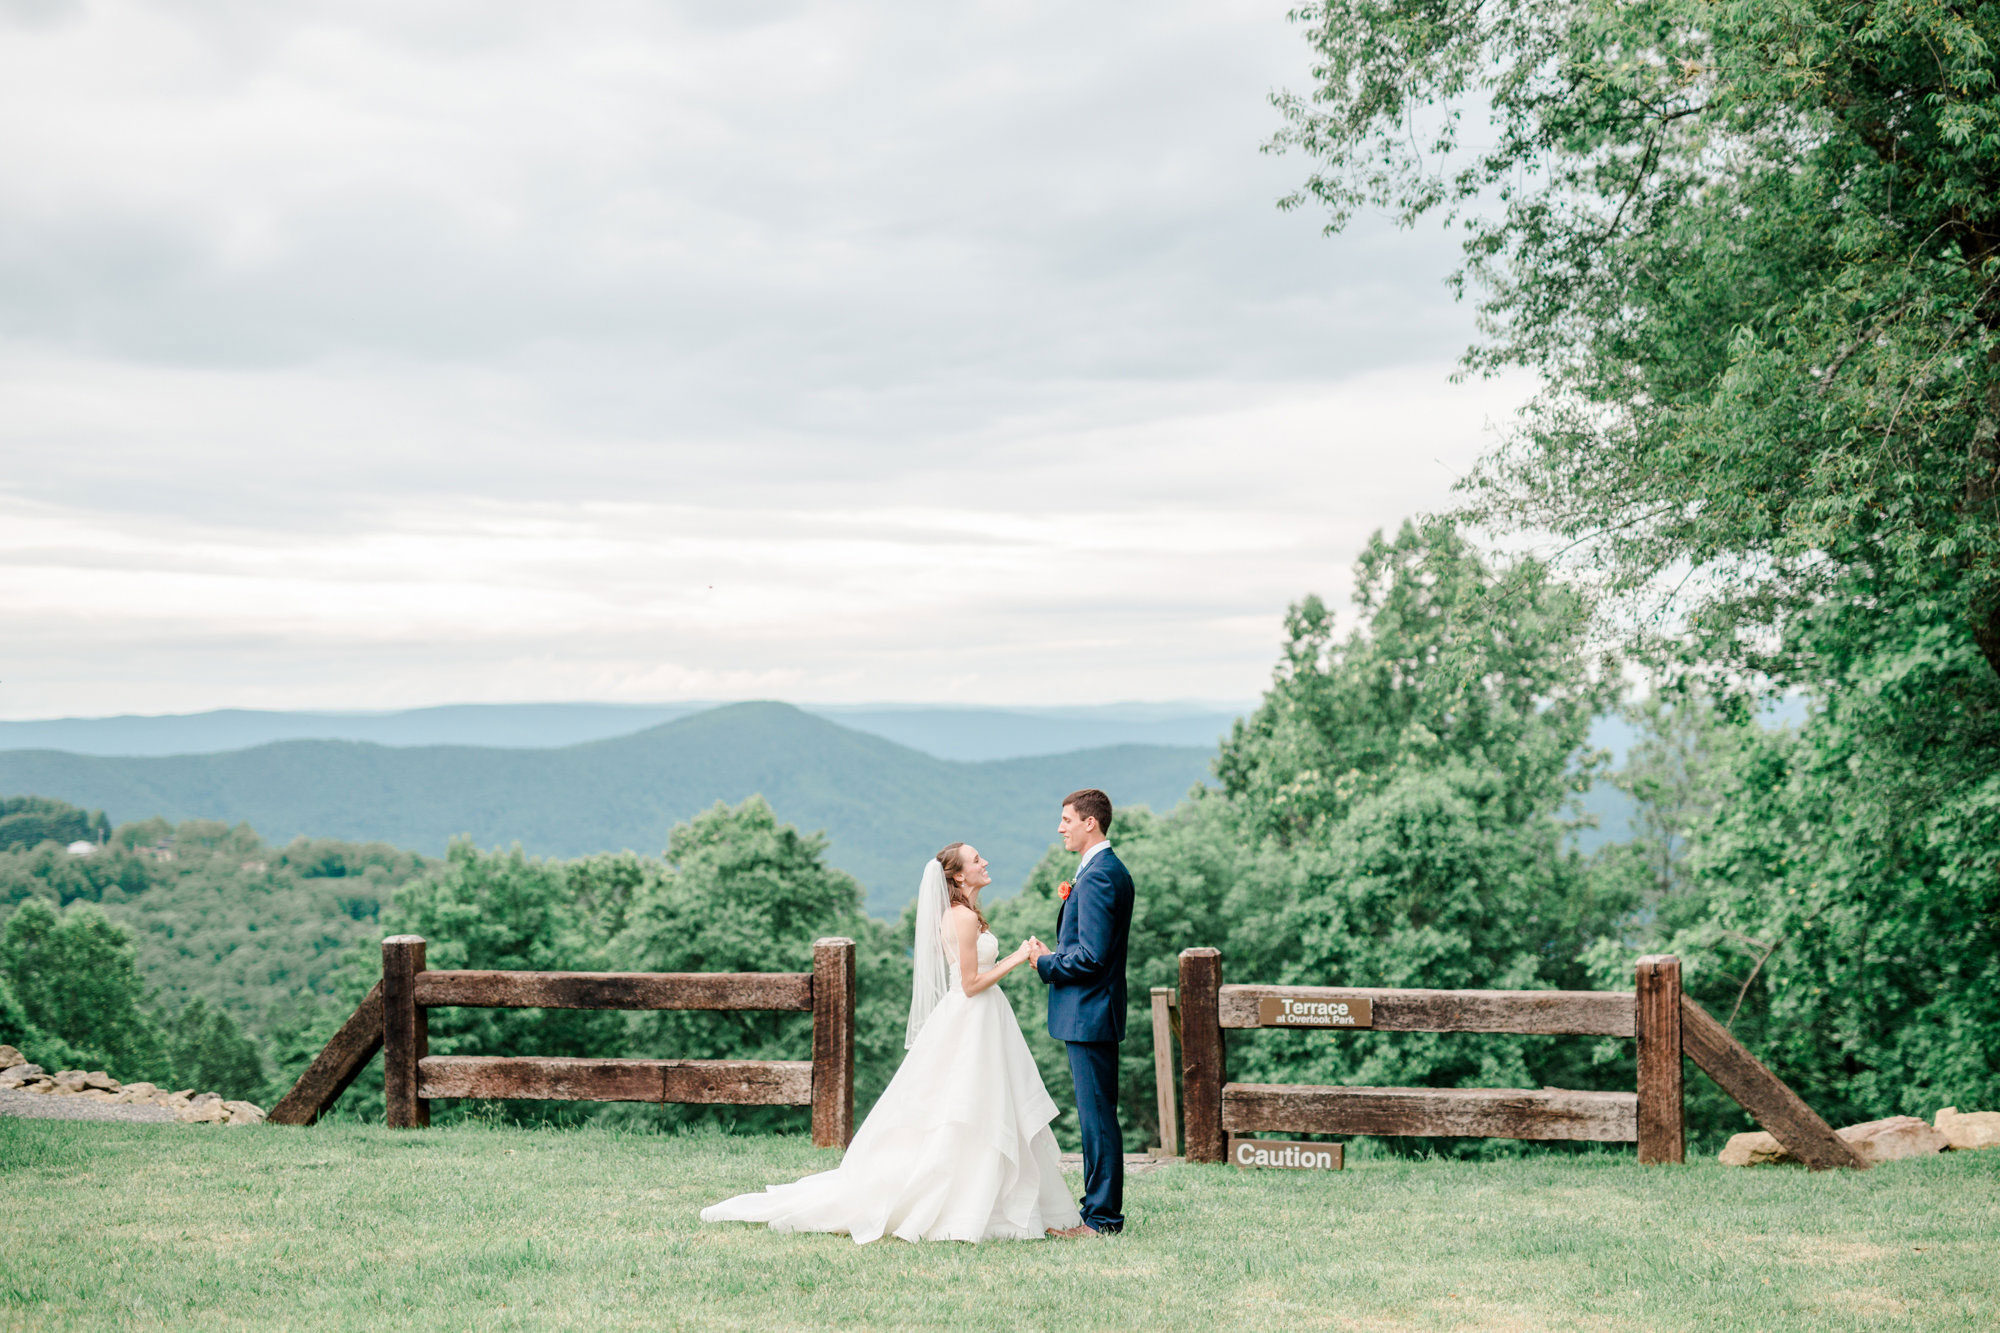 A Virginia Wedding with Incredible Mountain Views